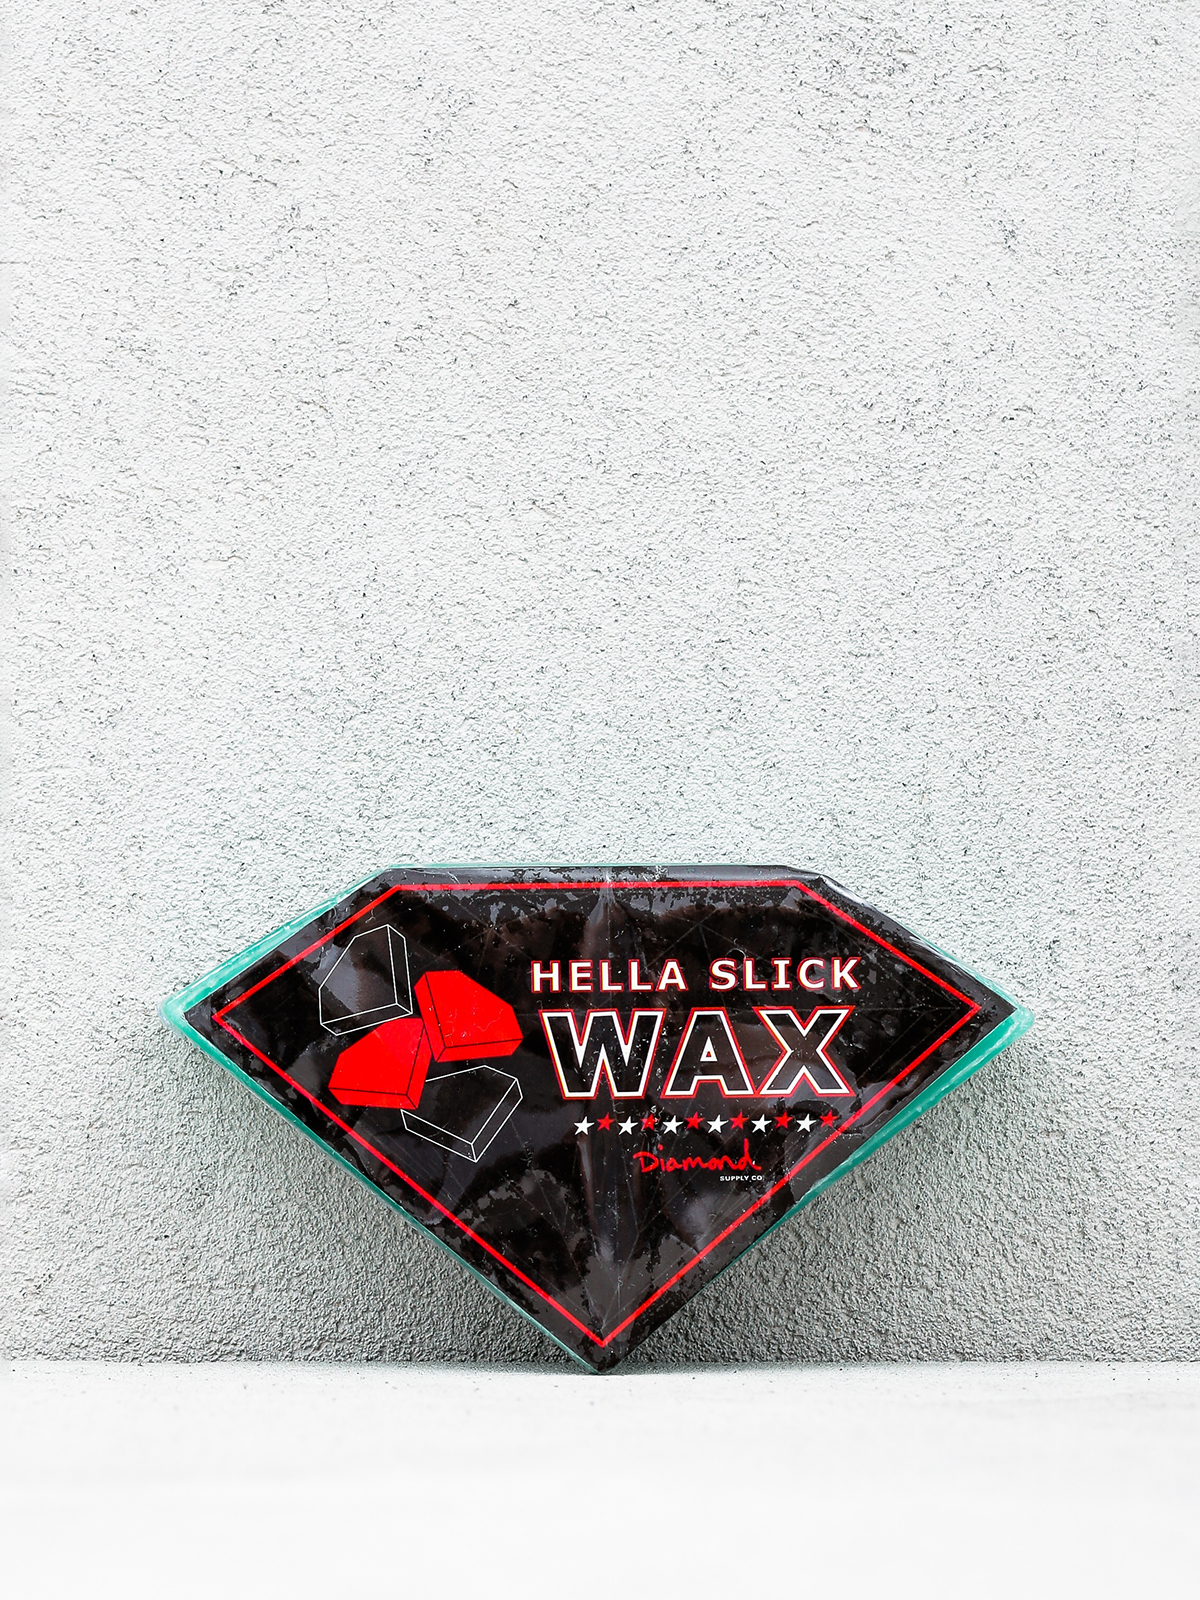 Wosk Diamond Supply Co. Hella Slick Wax (diamond blue)